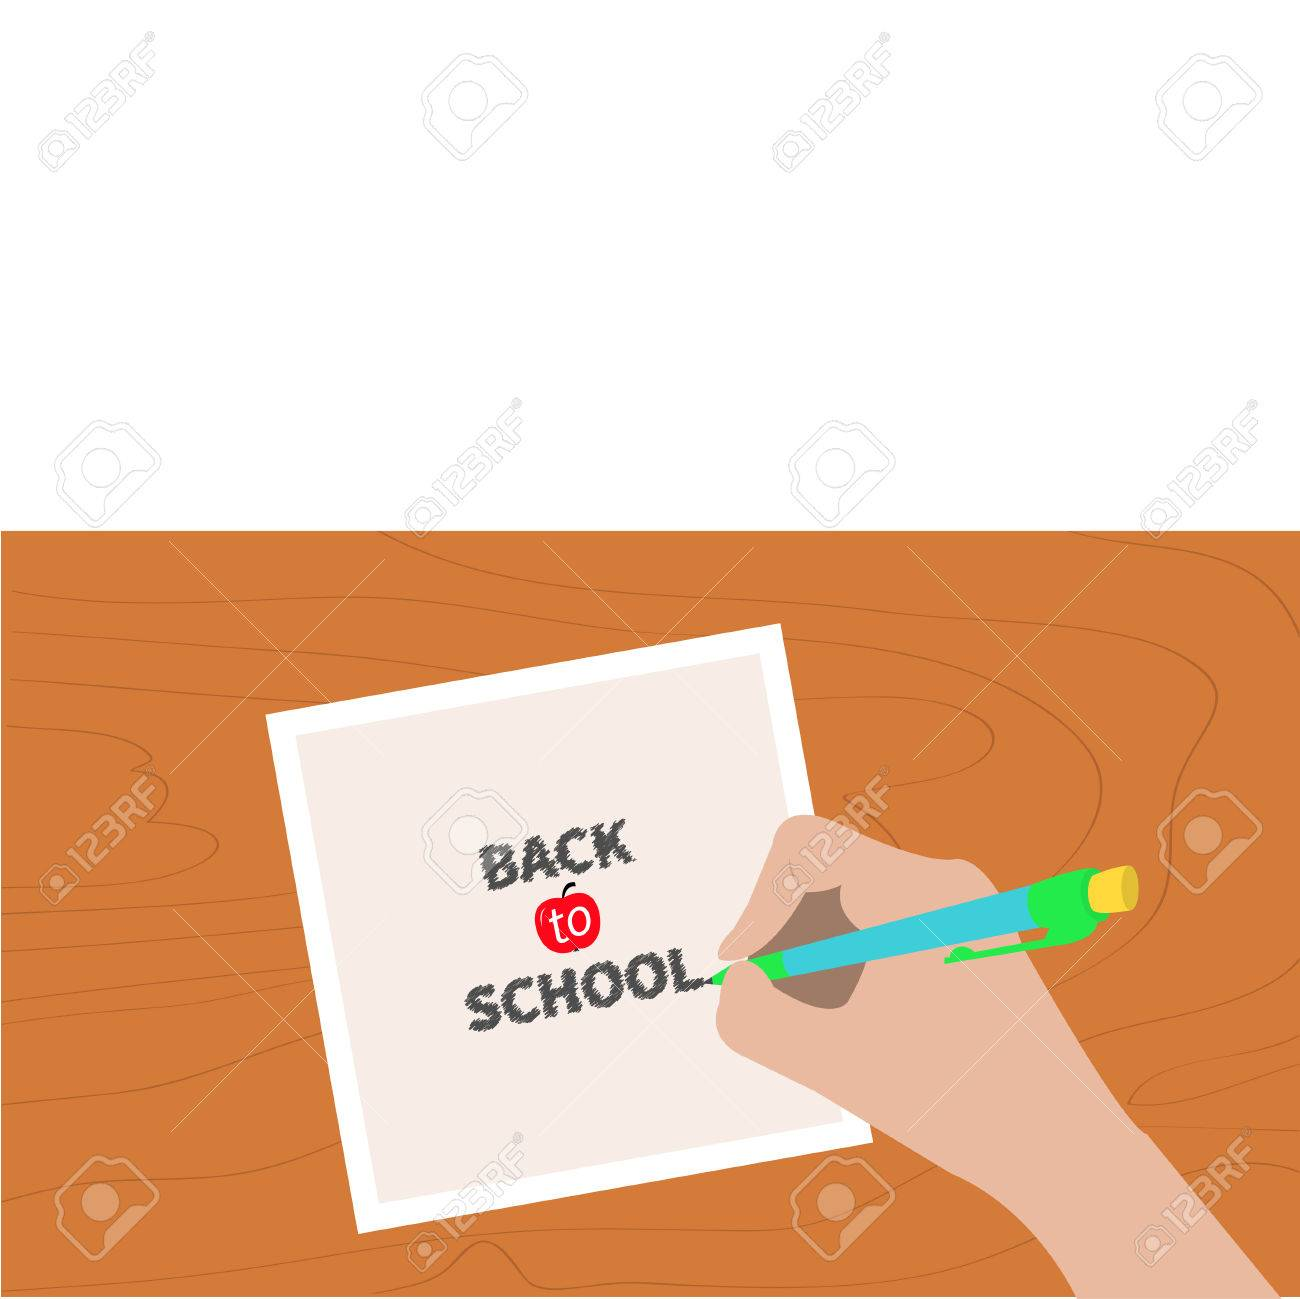 1300x1299 Back To School Chalk Text. Hand Writing Drawing Pen. Girl Holding